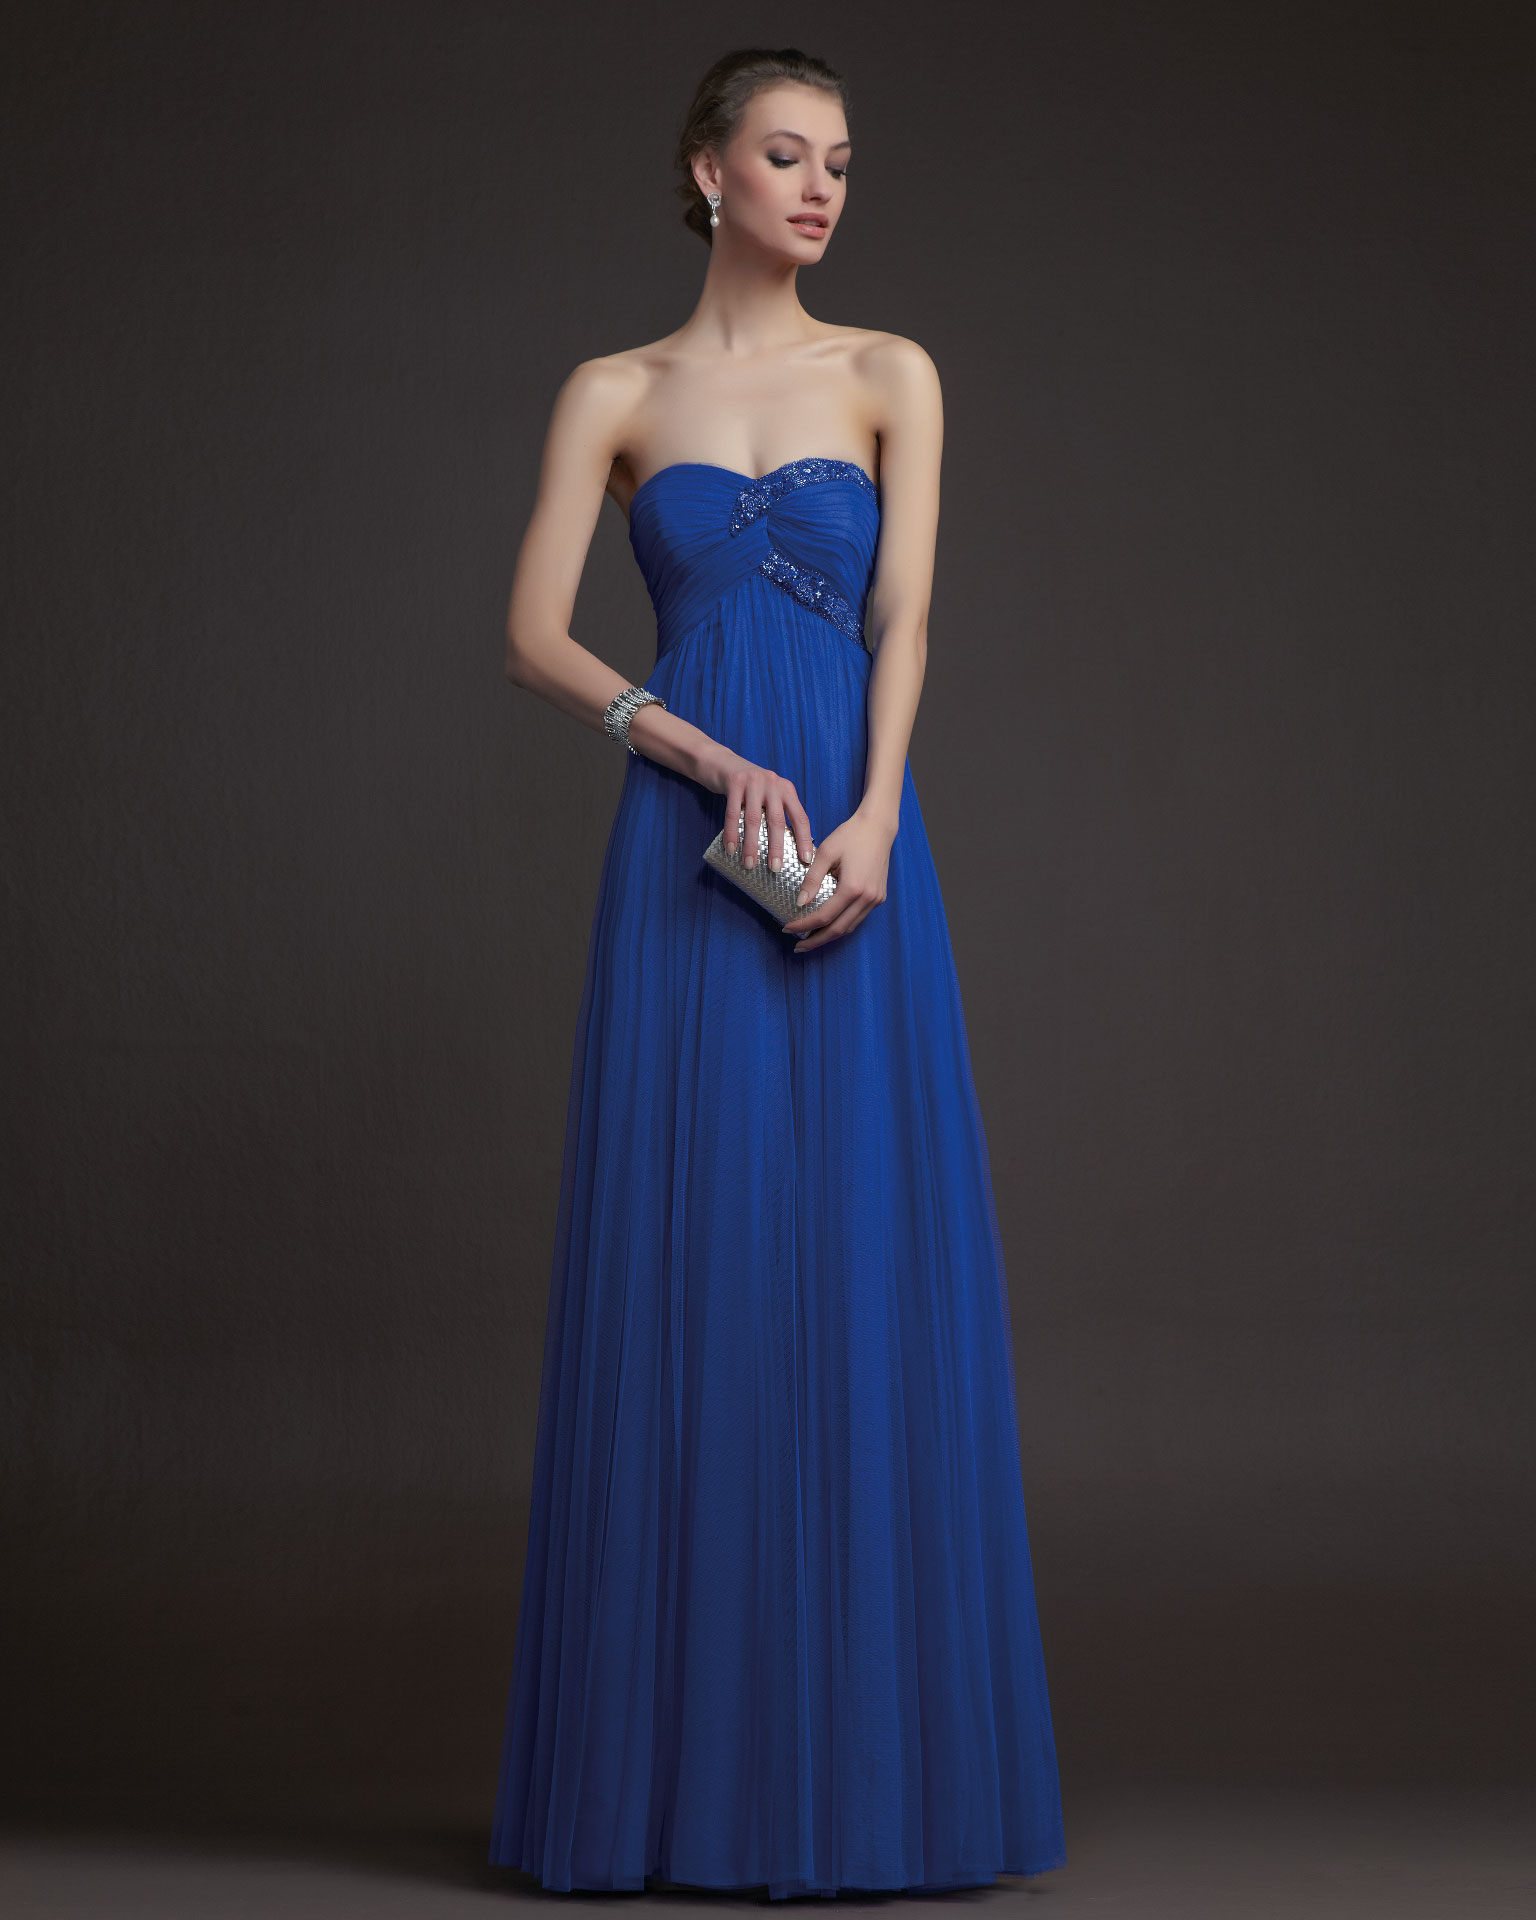 Gorgeous 2014 Bridesmaid Dresses From Aire Barcelona Blue One Shoulder